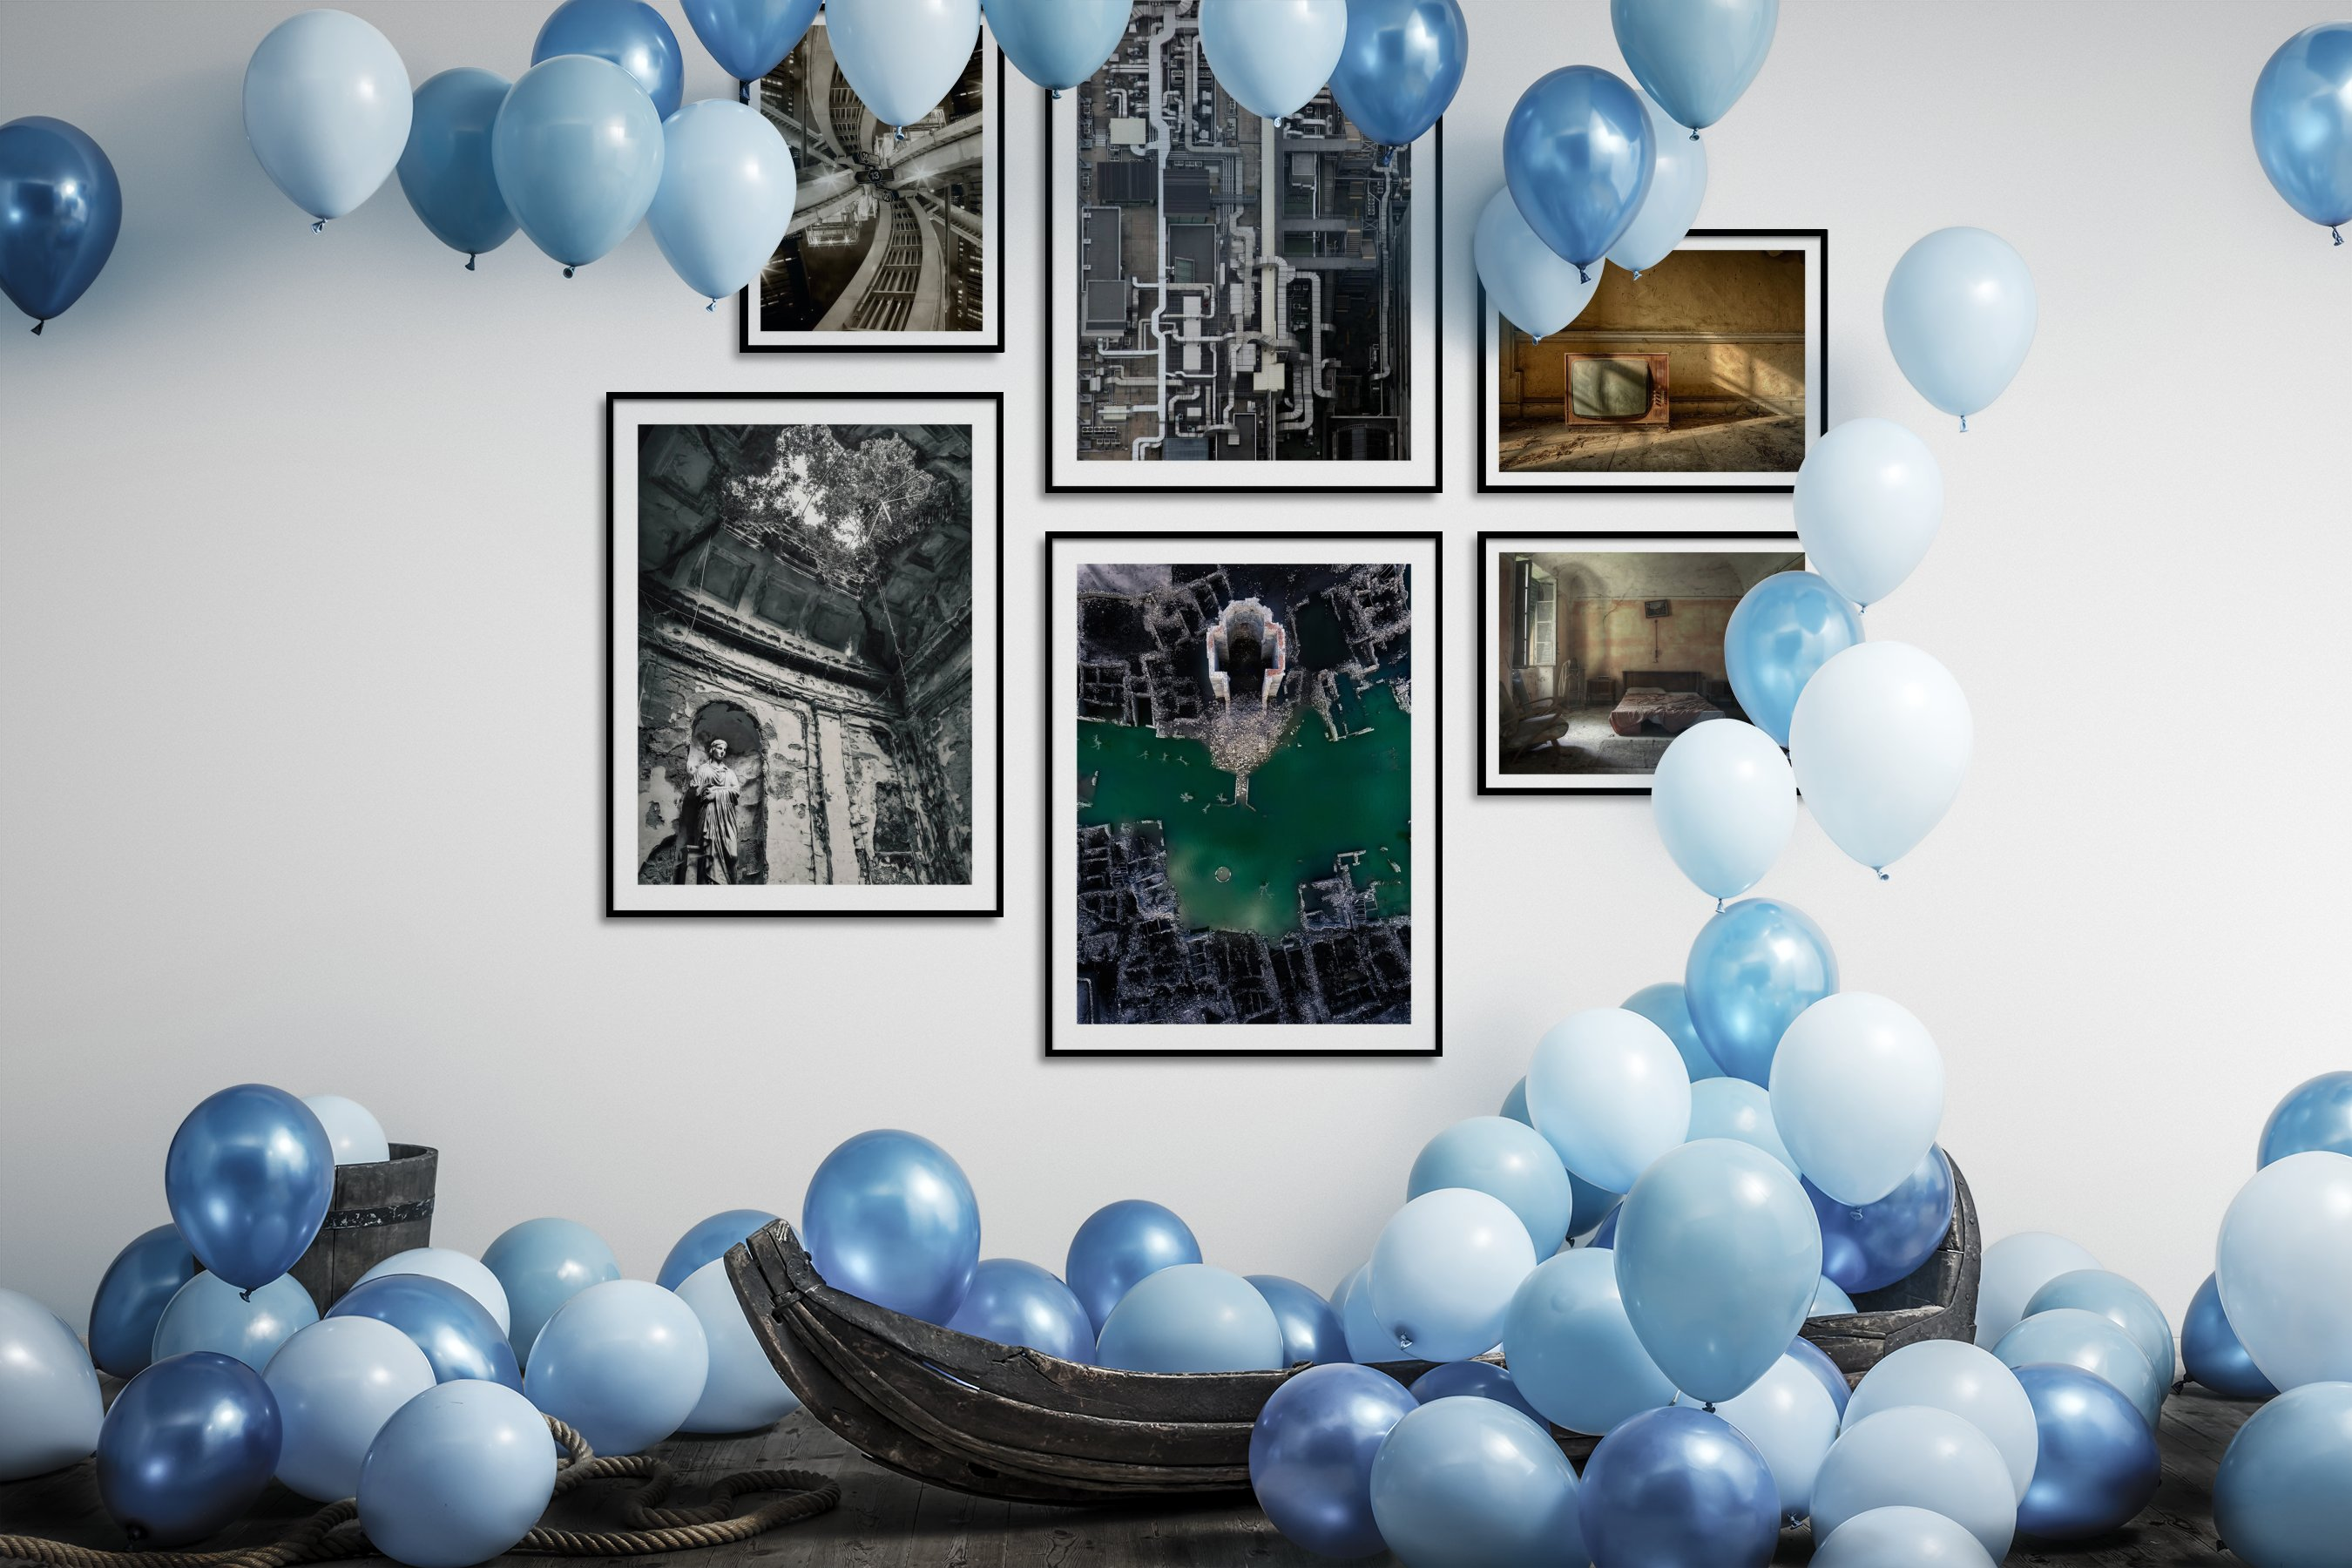 Gallery wall idea with six framed pictures arranged on a wall depicting For the Maximalist, City Life, Black & White, Vintage, and For the Moderate